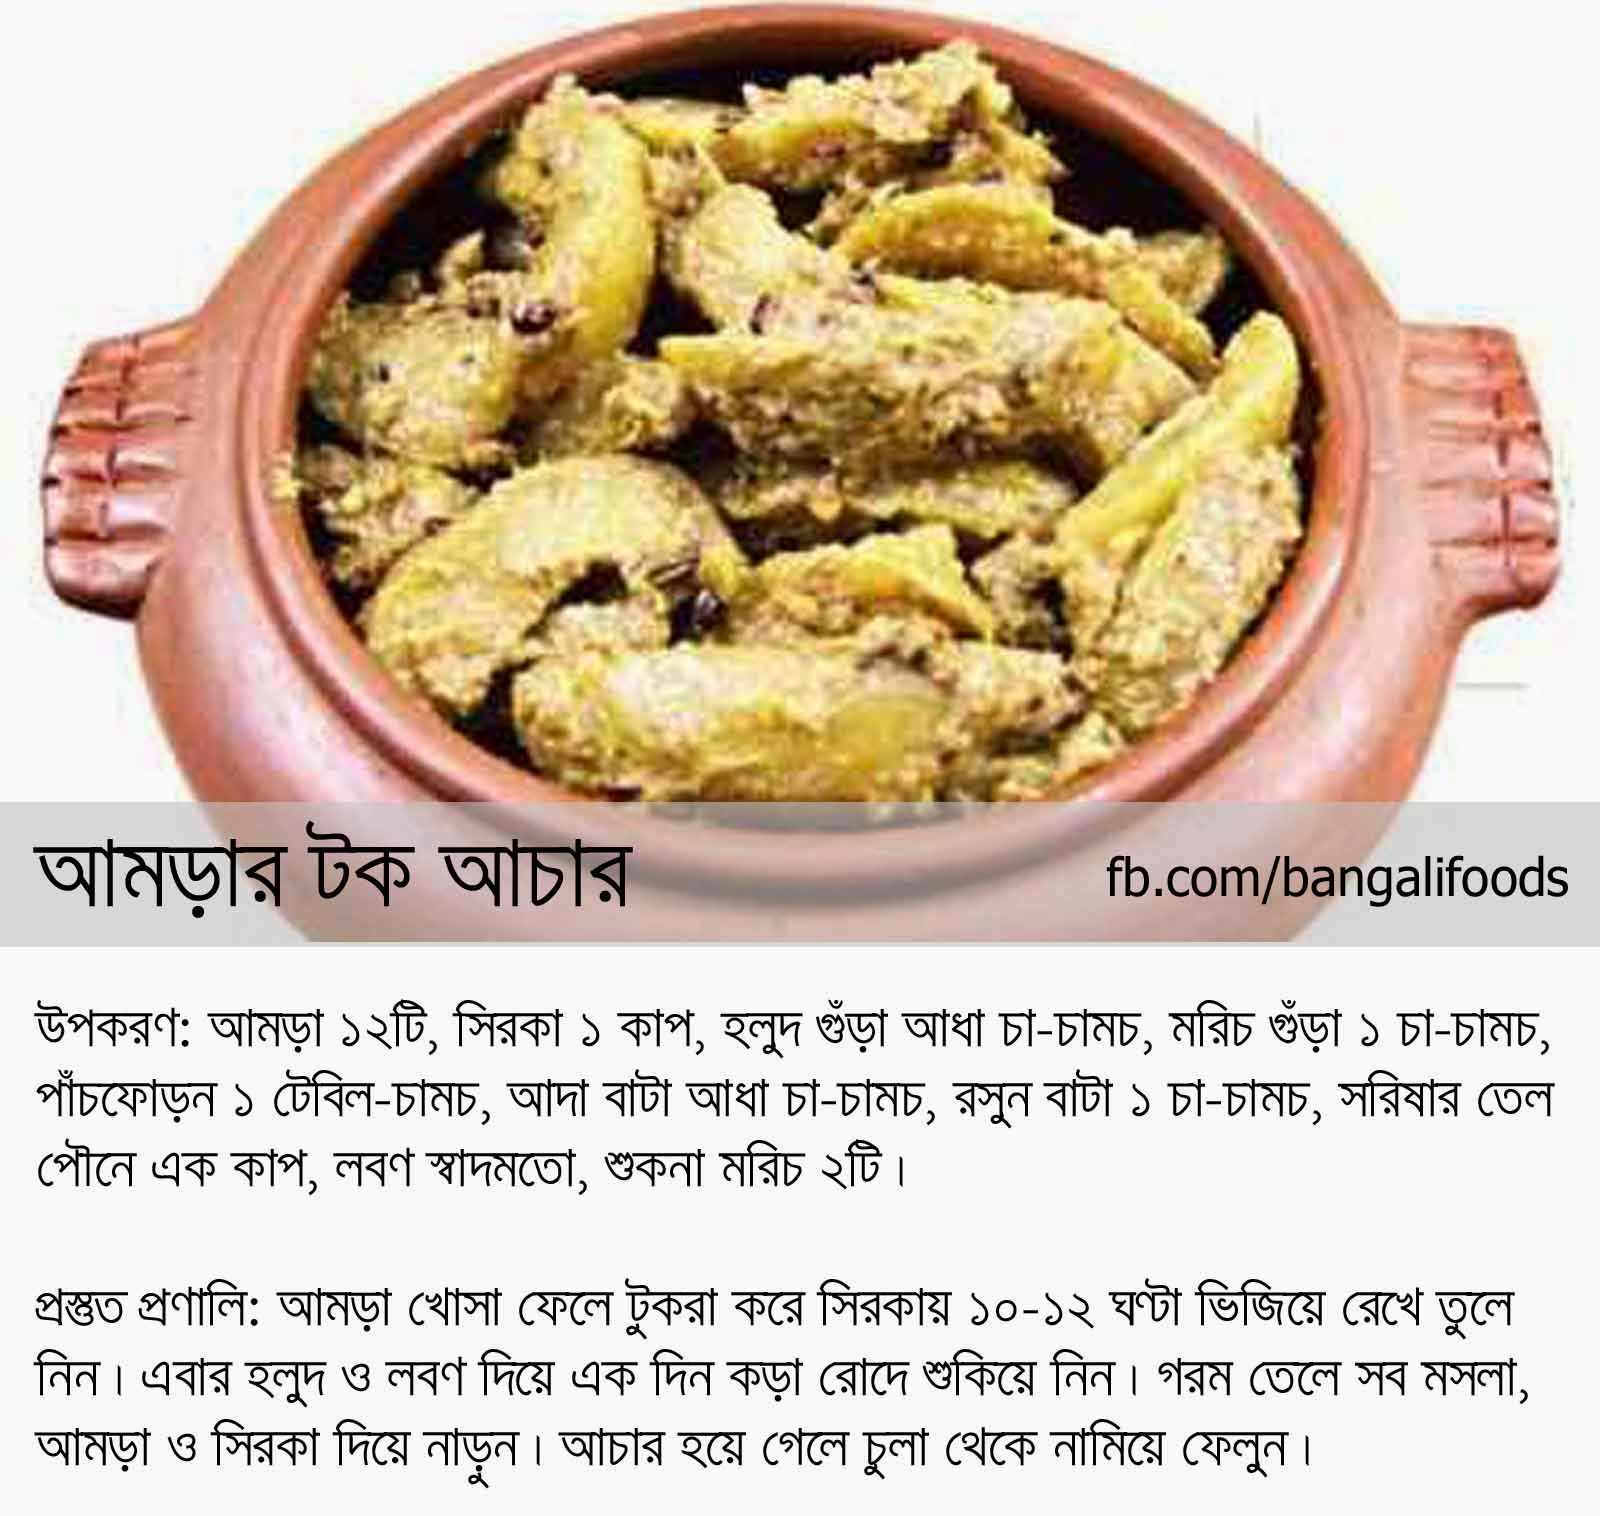 Bangali foods yummy pickles recipe in bangla spondias pinnata achar forumfinder